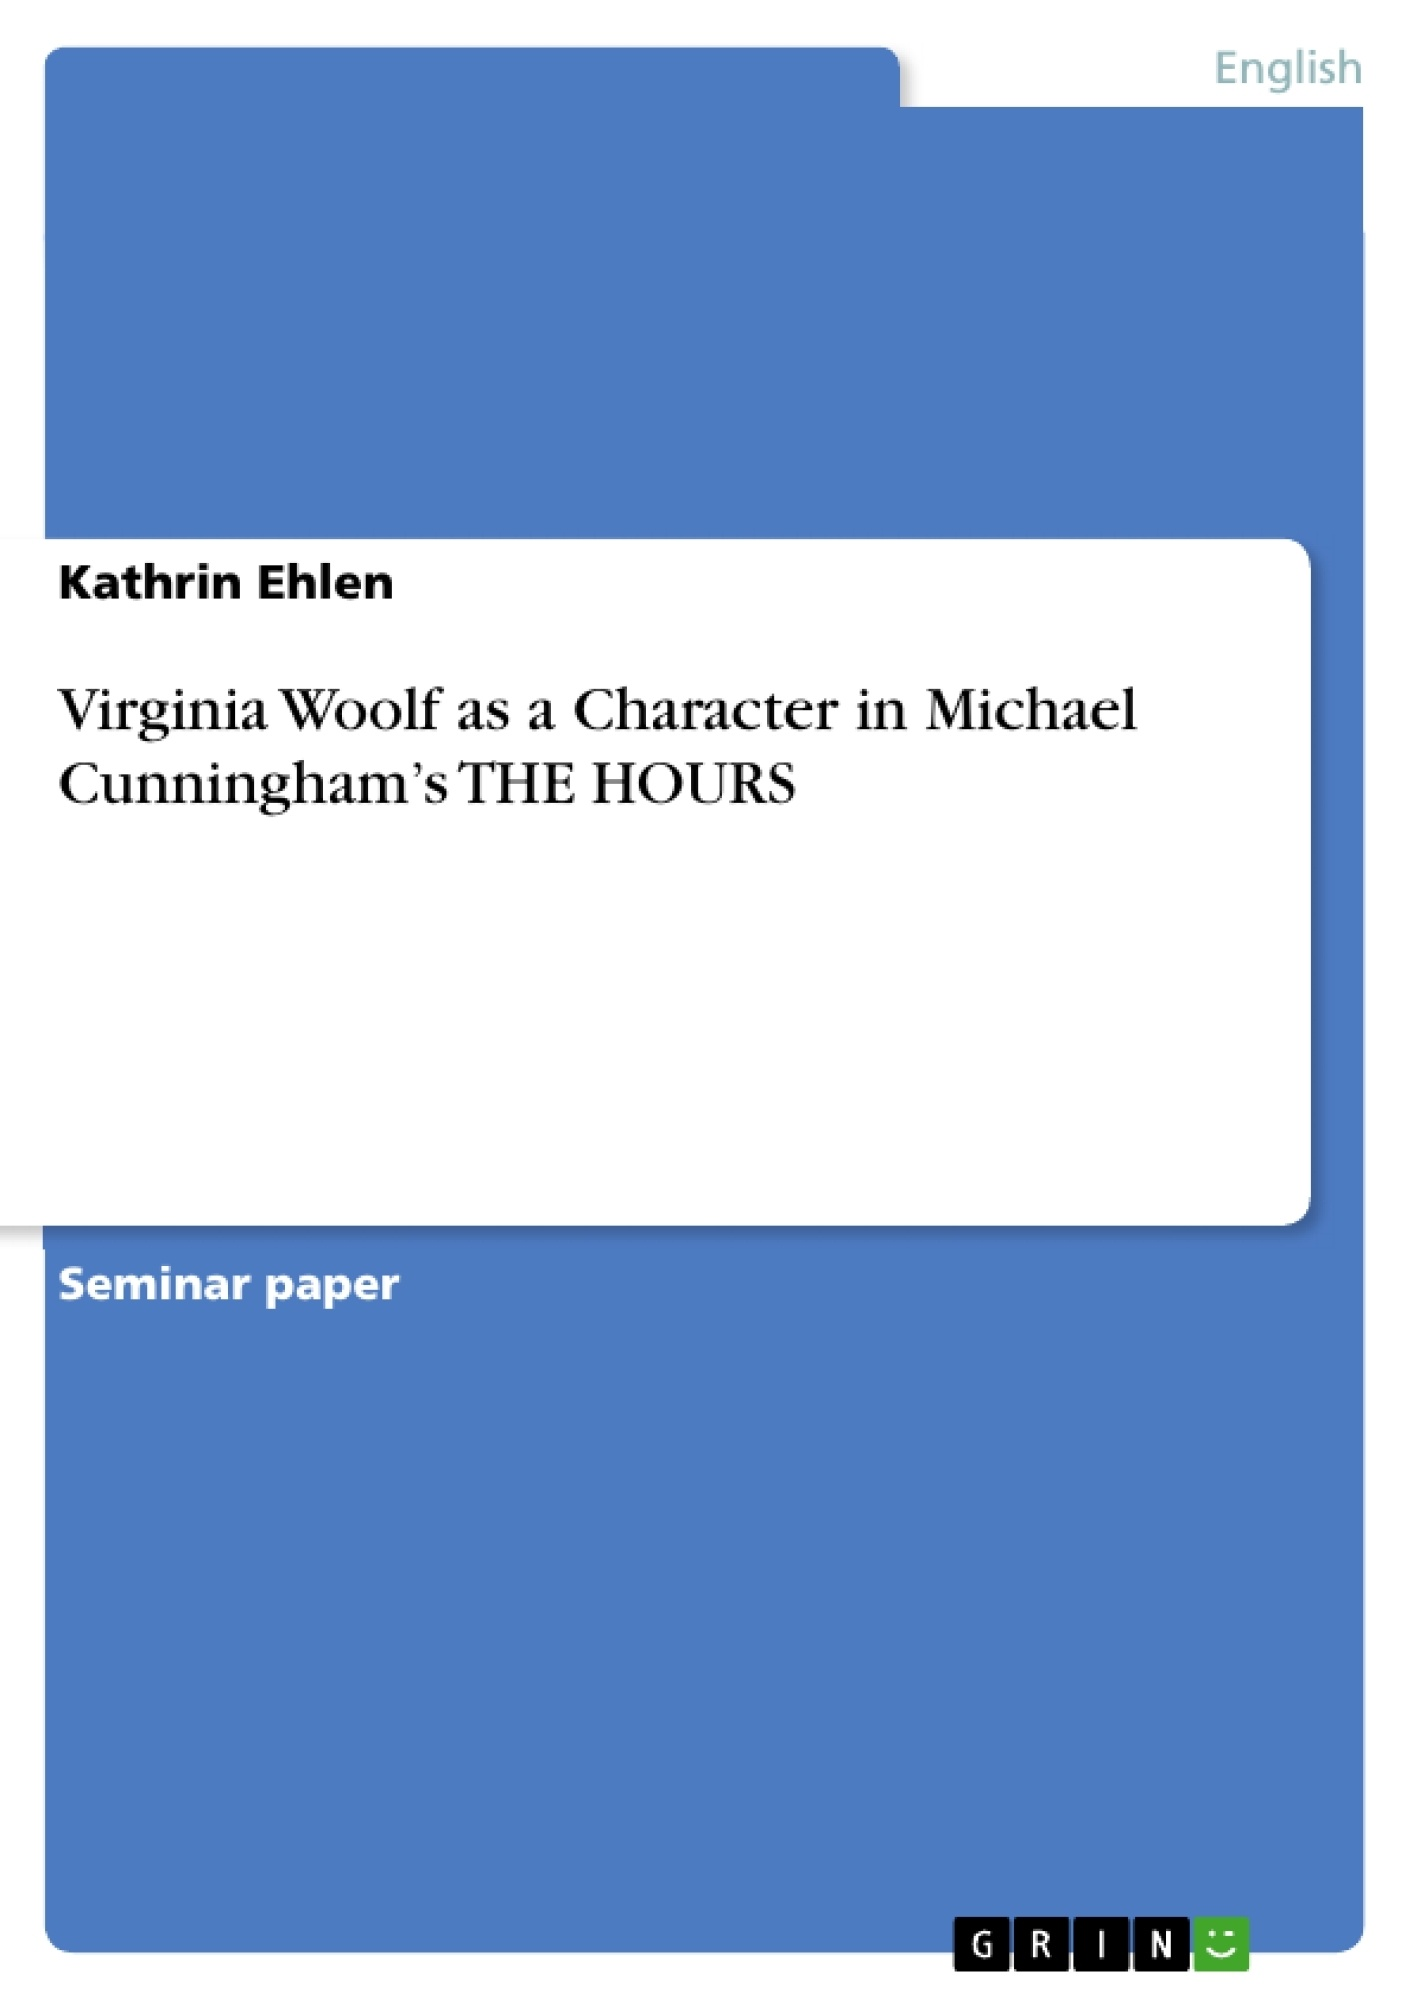 Title: Virginia Woolf as a Character in Michael Cunningham's THE HOURS